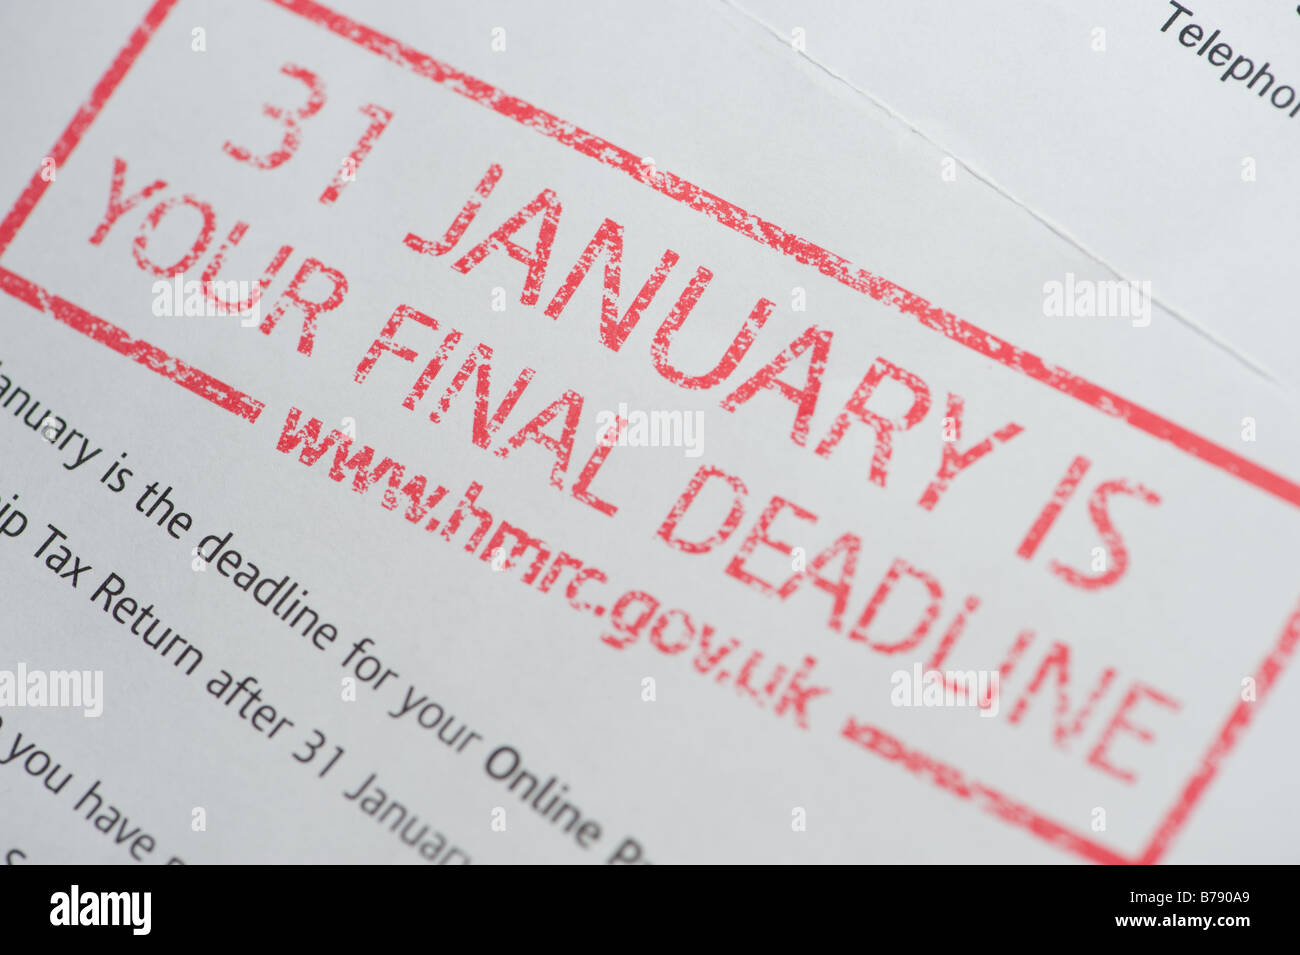 UK Inland Revenue reminder to pay Income Tax by the January 31st final deadline issued by HMRC - Stock Image